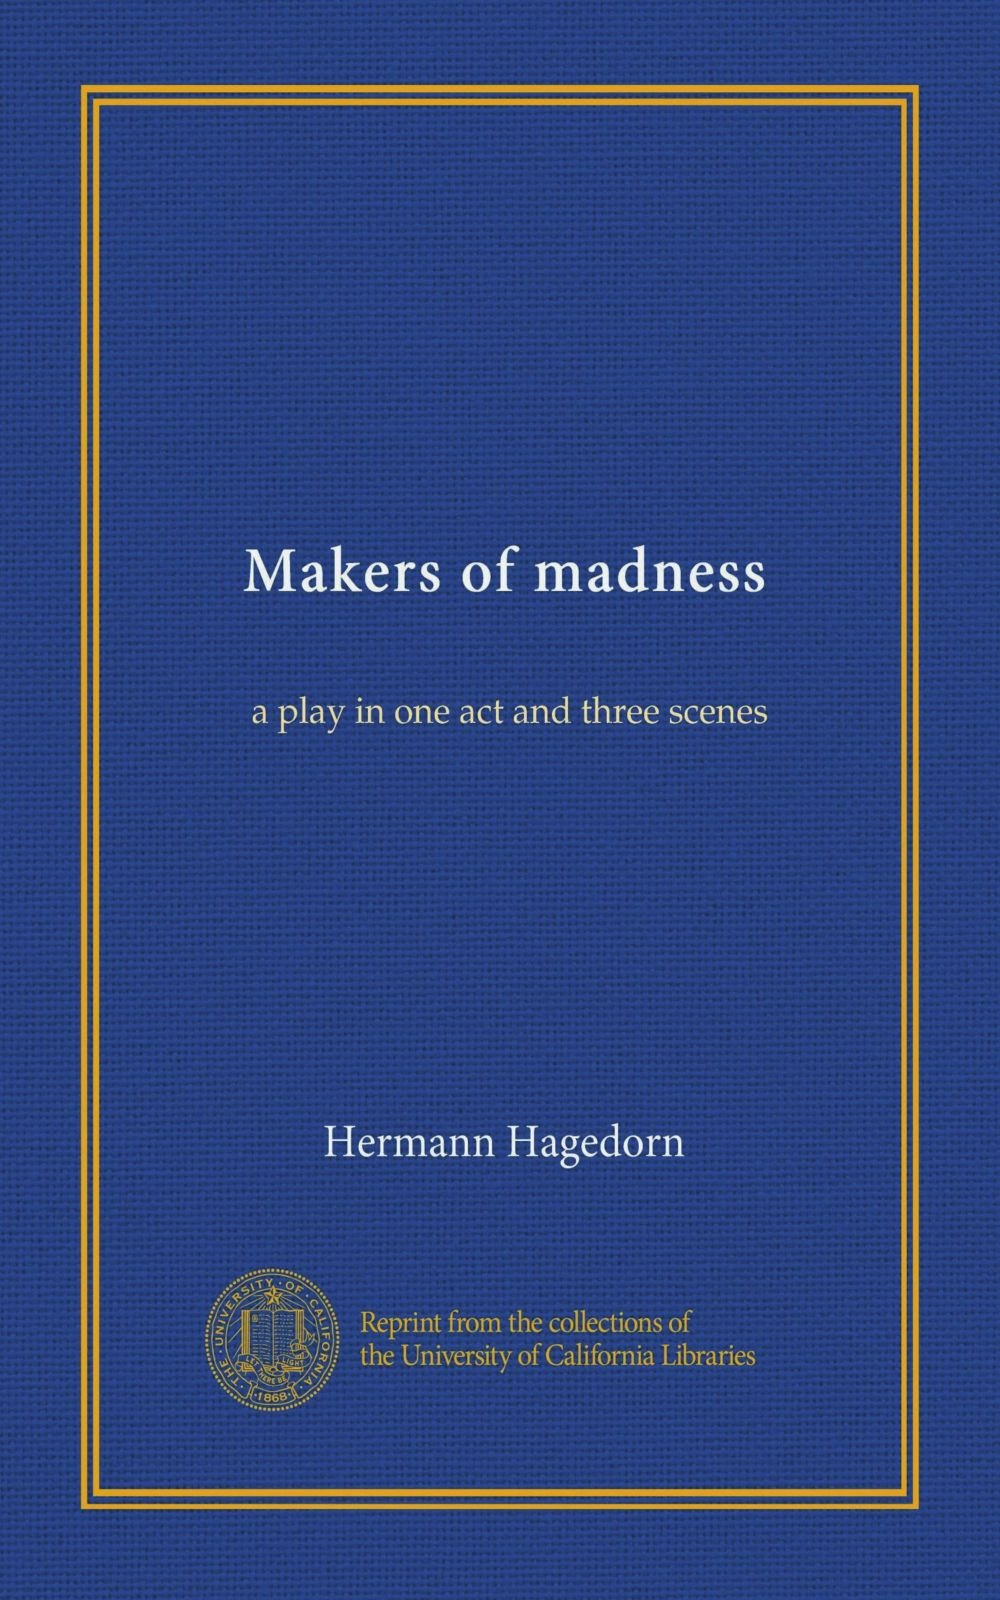 Download Makers of madness: a play in one act and three scenes ebook